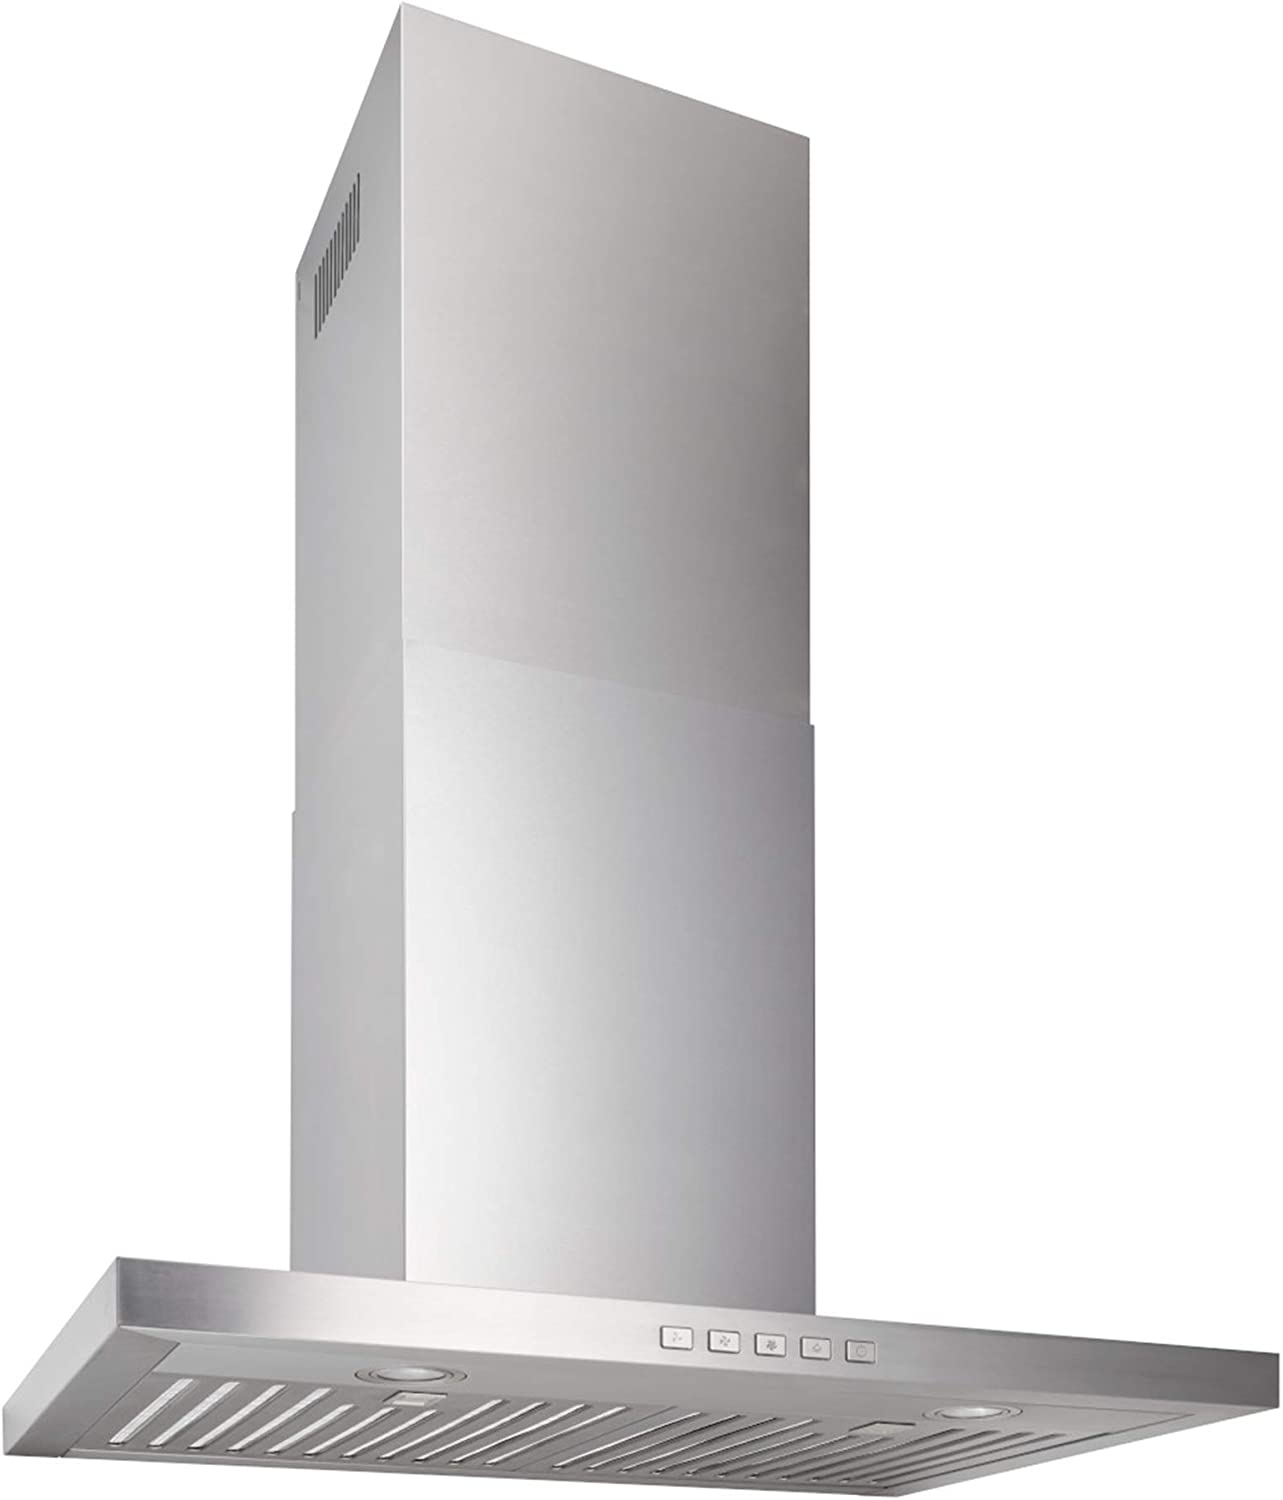 Broan-NuTone BWT2304SS Convertible Wall-Mount LED Lights T-Style Chimney Range Hood, Stainless Steel